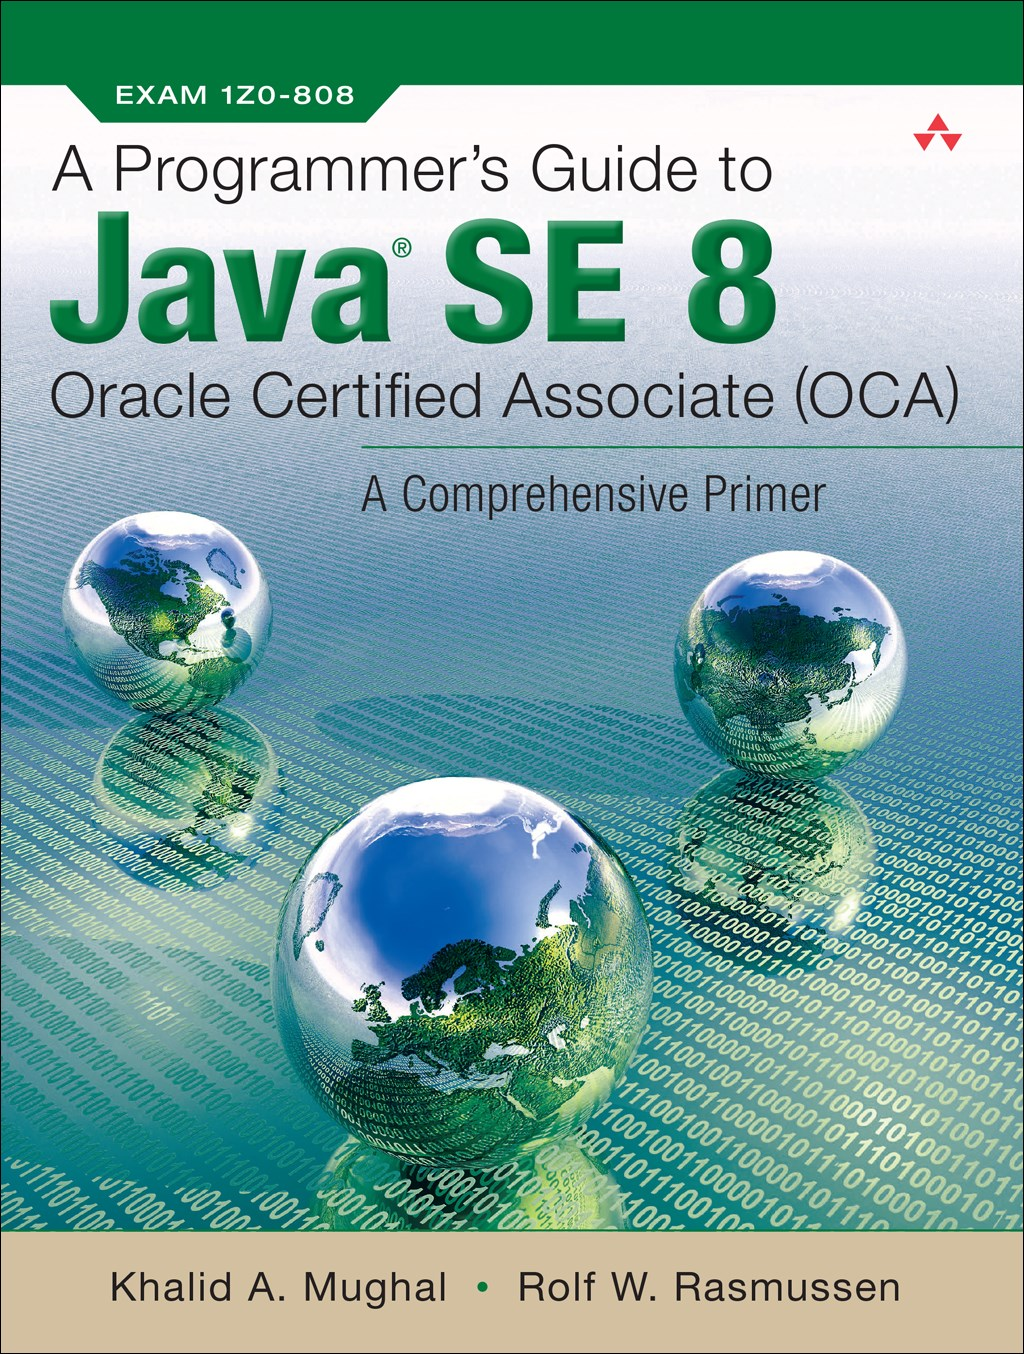 Programmer's Guide to Java SE 8 Oracle Certified Associate (OCA), A